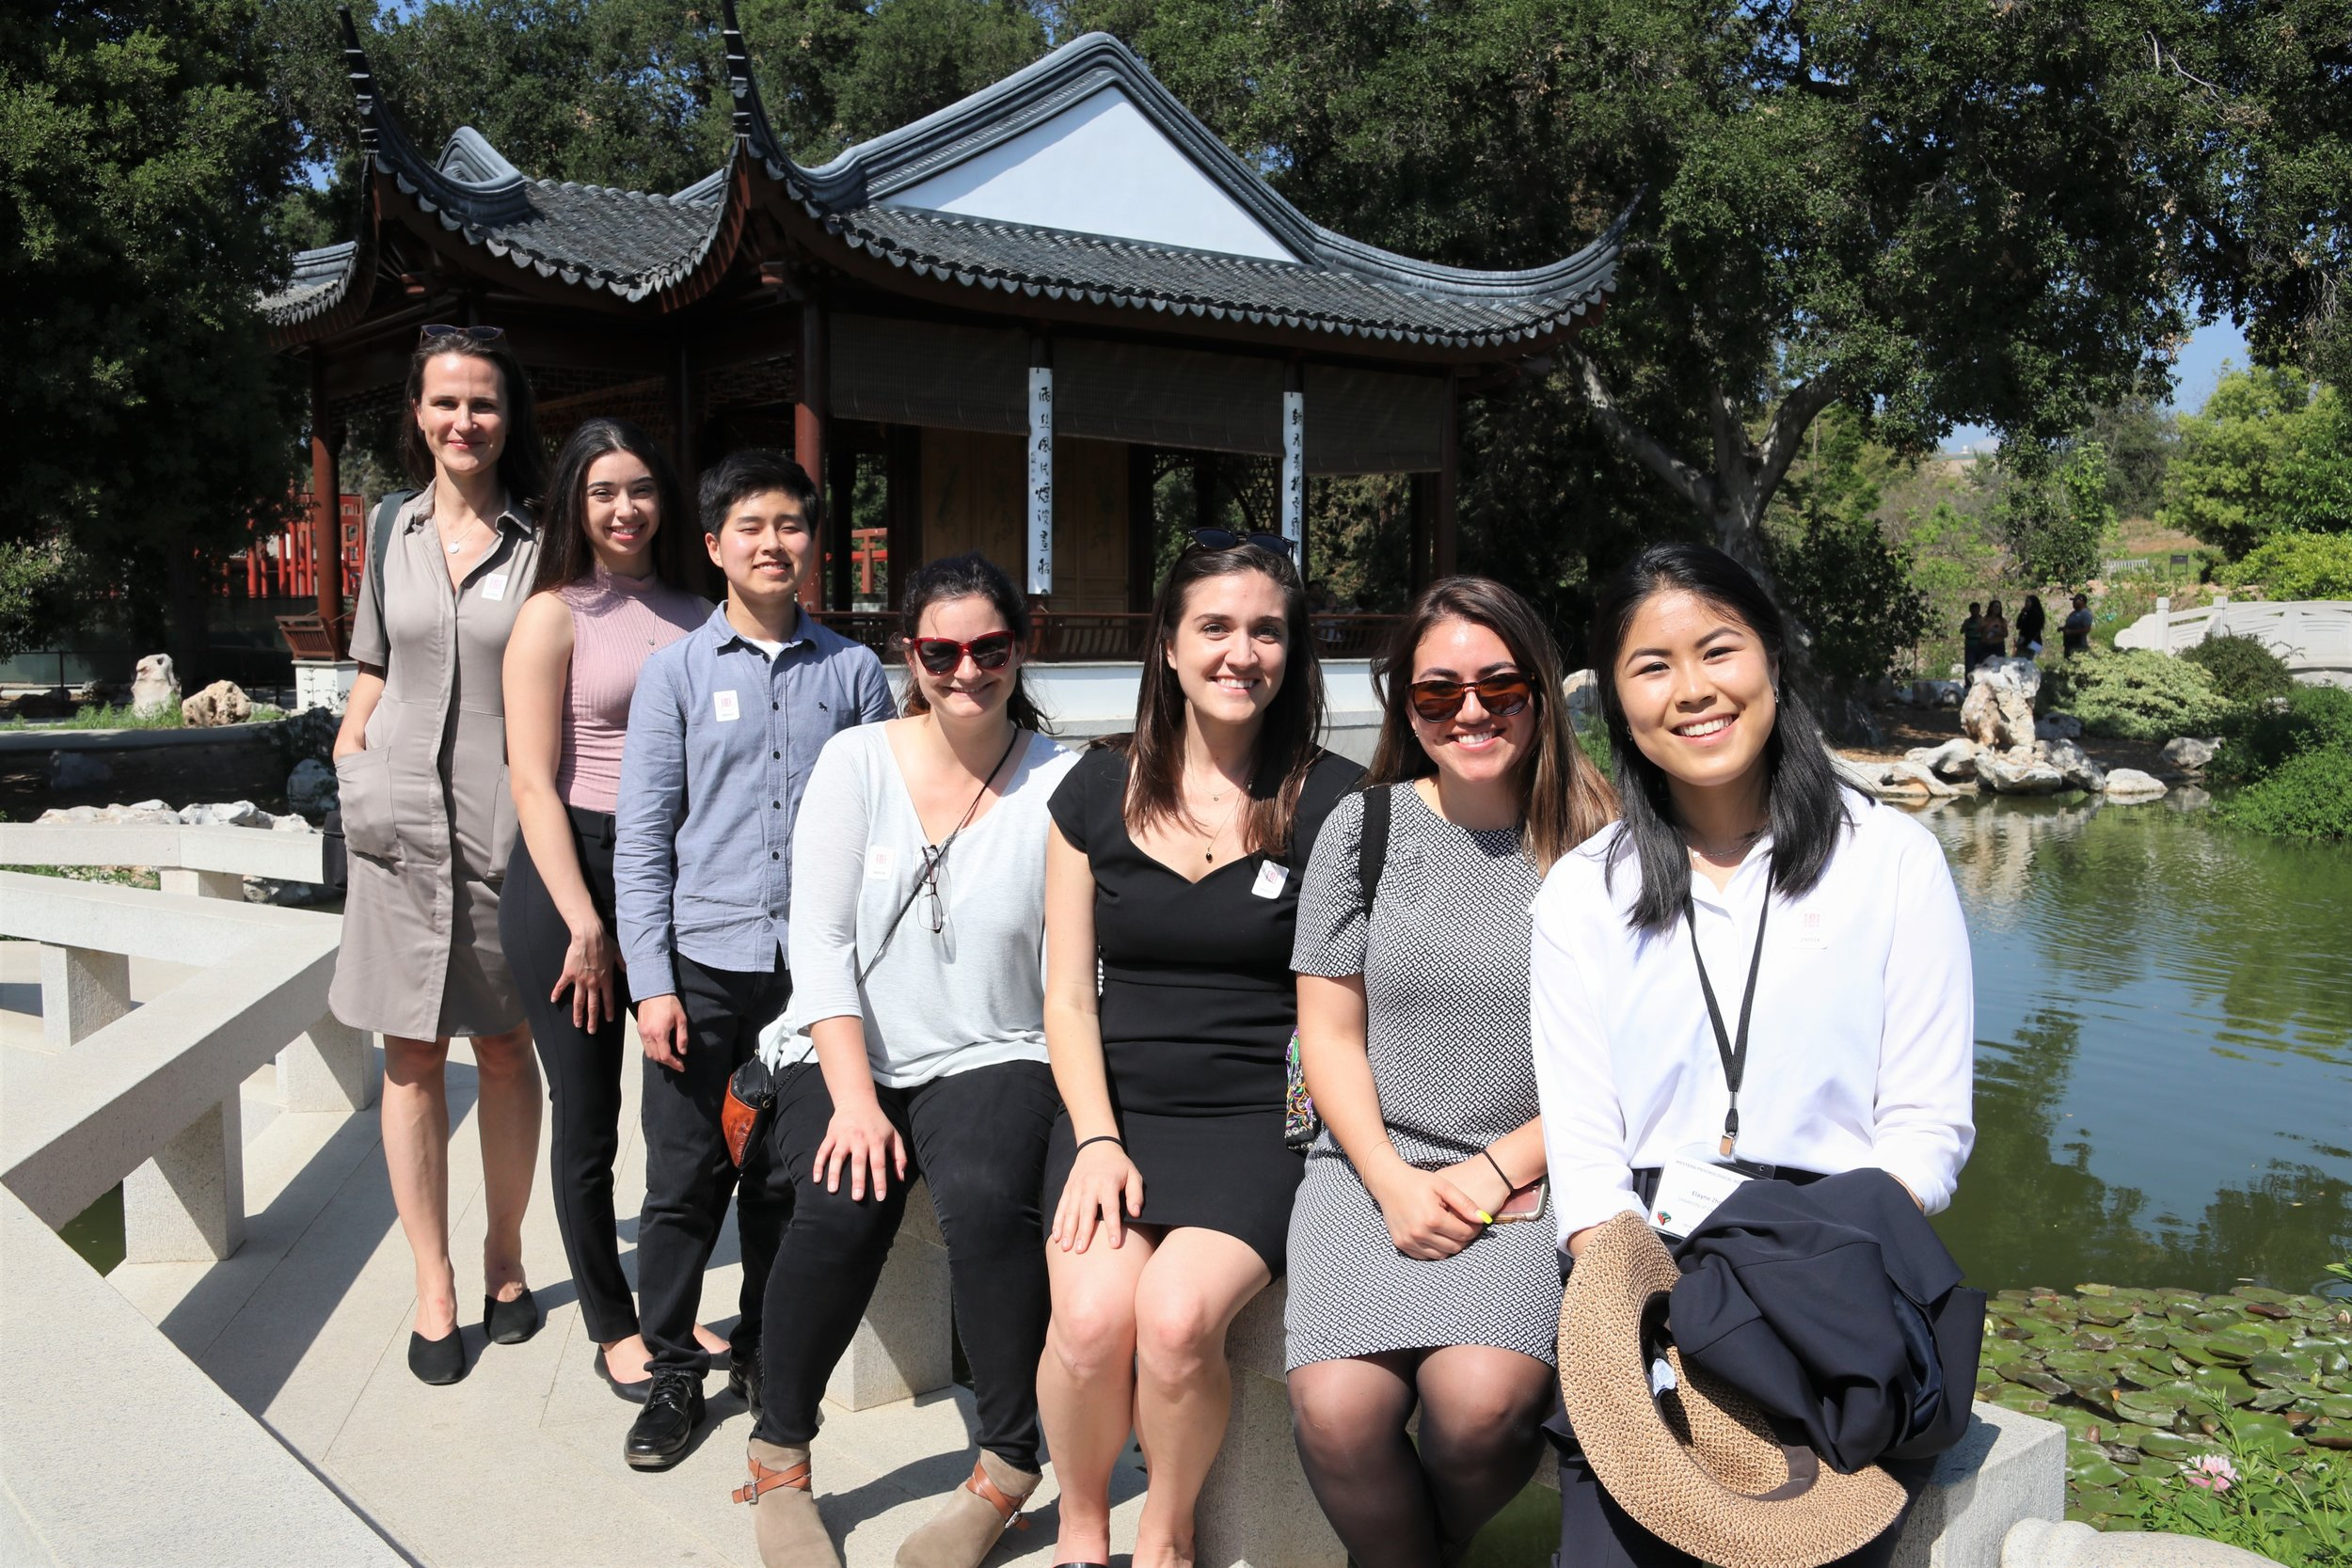 KIND Lab visits the Huntington Gardens following a successful 2019 WPA conference in Pasadena.